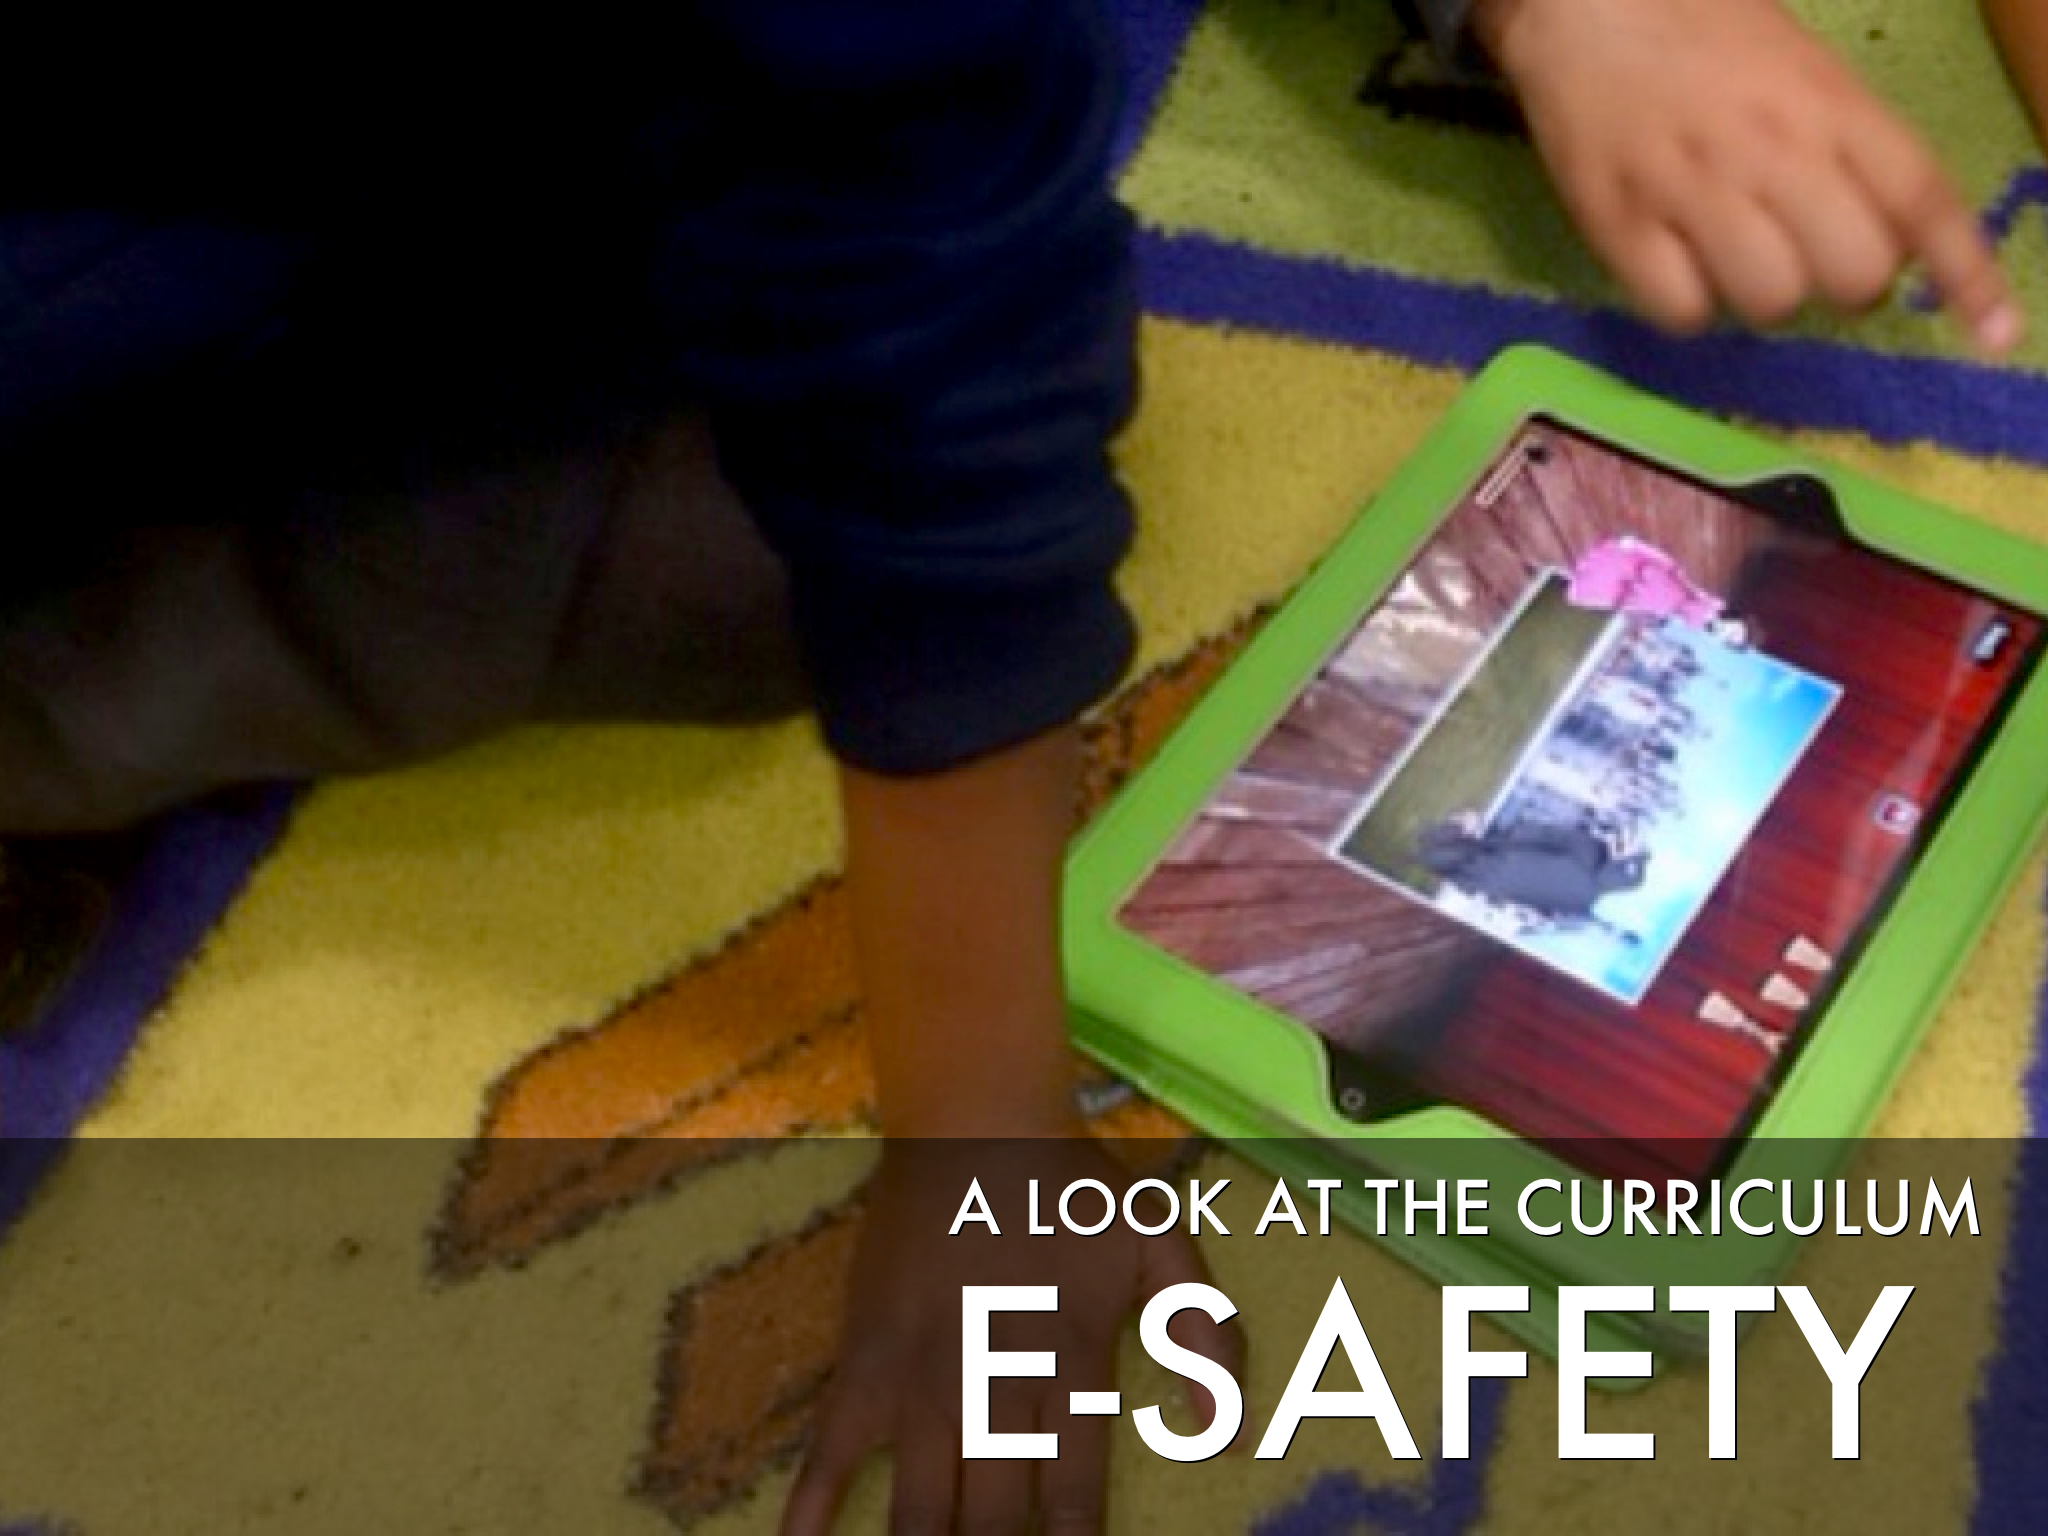 e-safety – A New Curriculum?